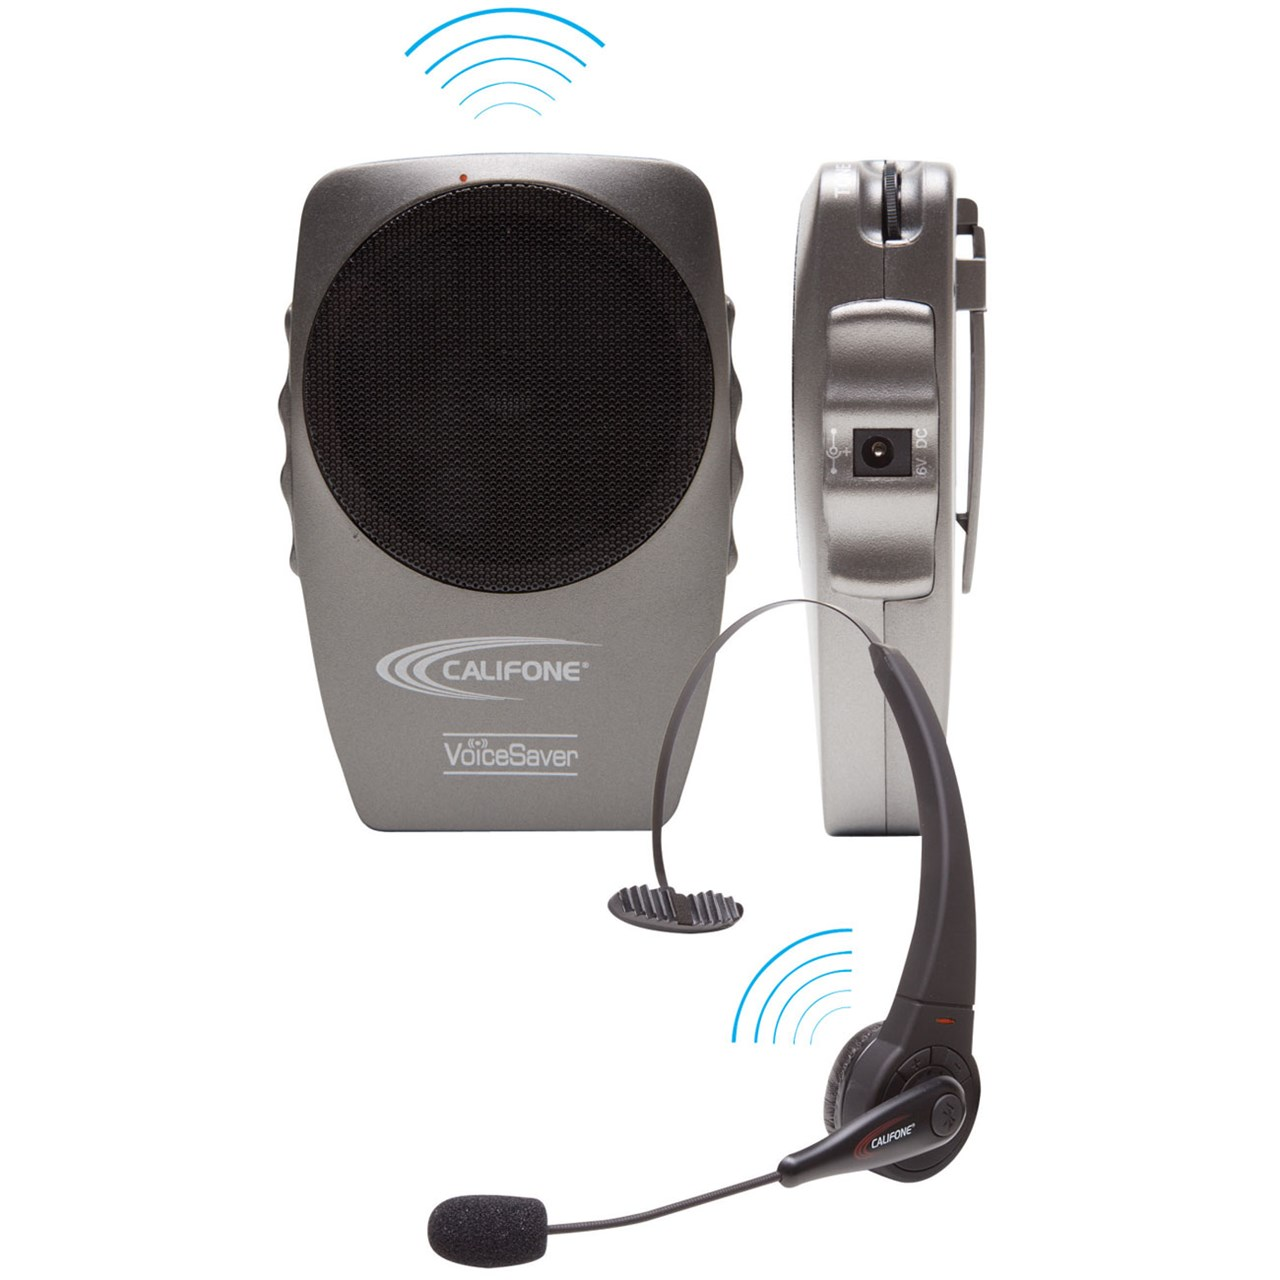 Califone International PA283 Bluetooth VoiceSaver